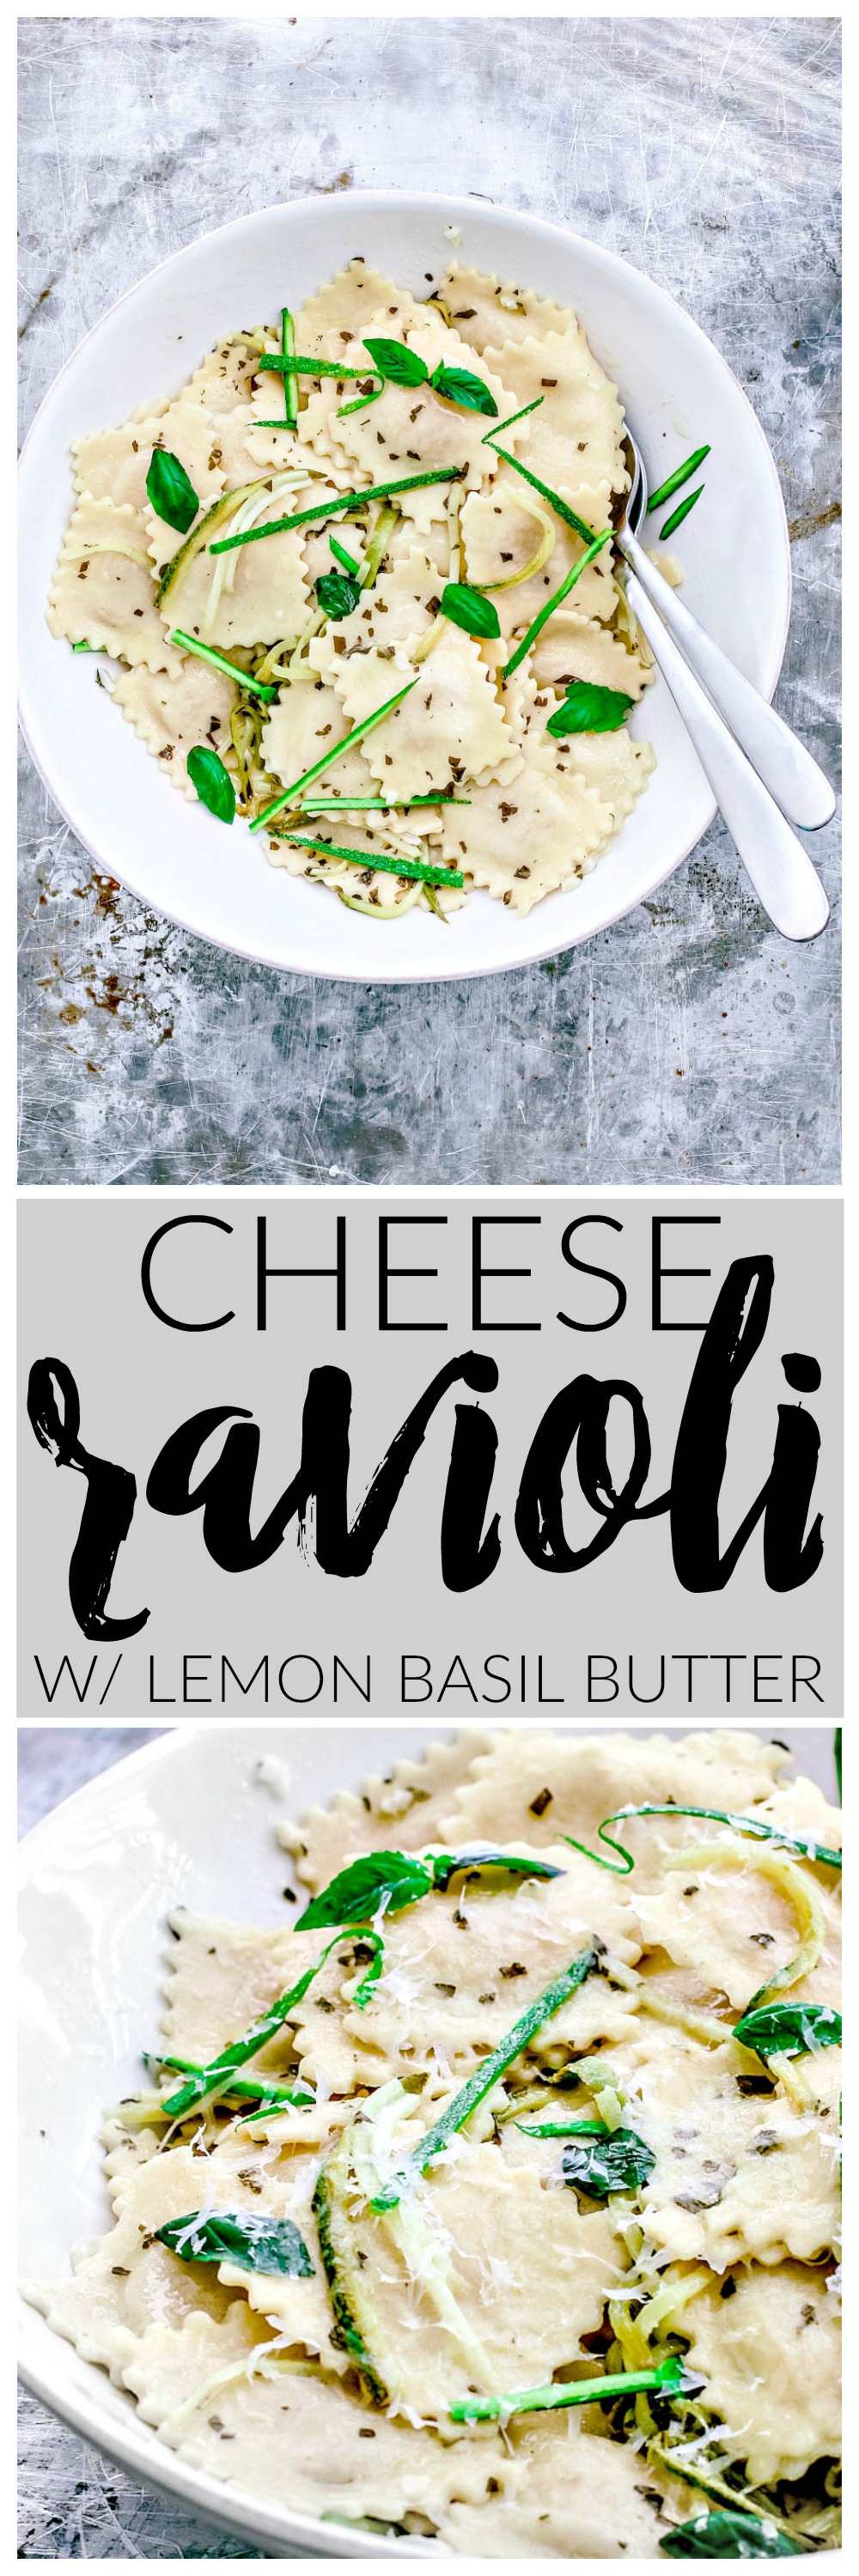 10-Minute Cheese Ravioli With Lemon Basil Butter Sauce | Killing Thyme